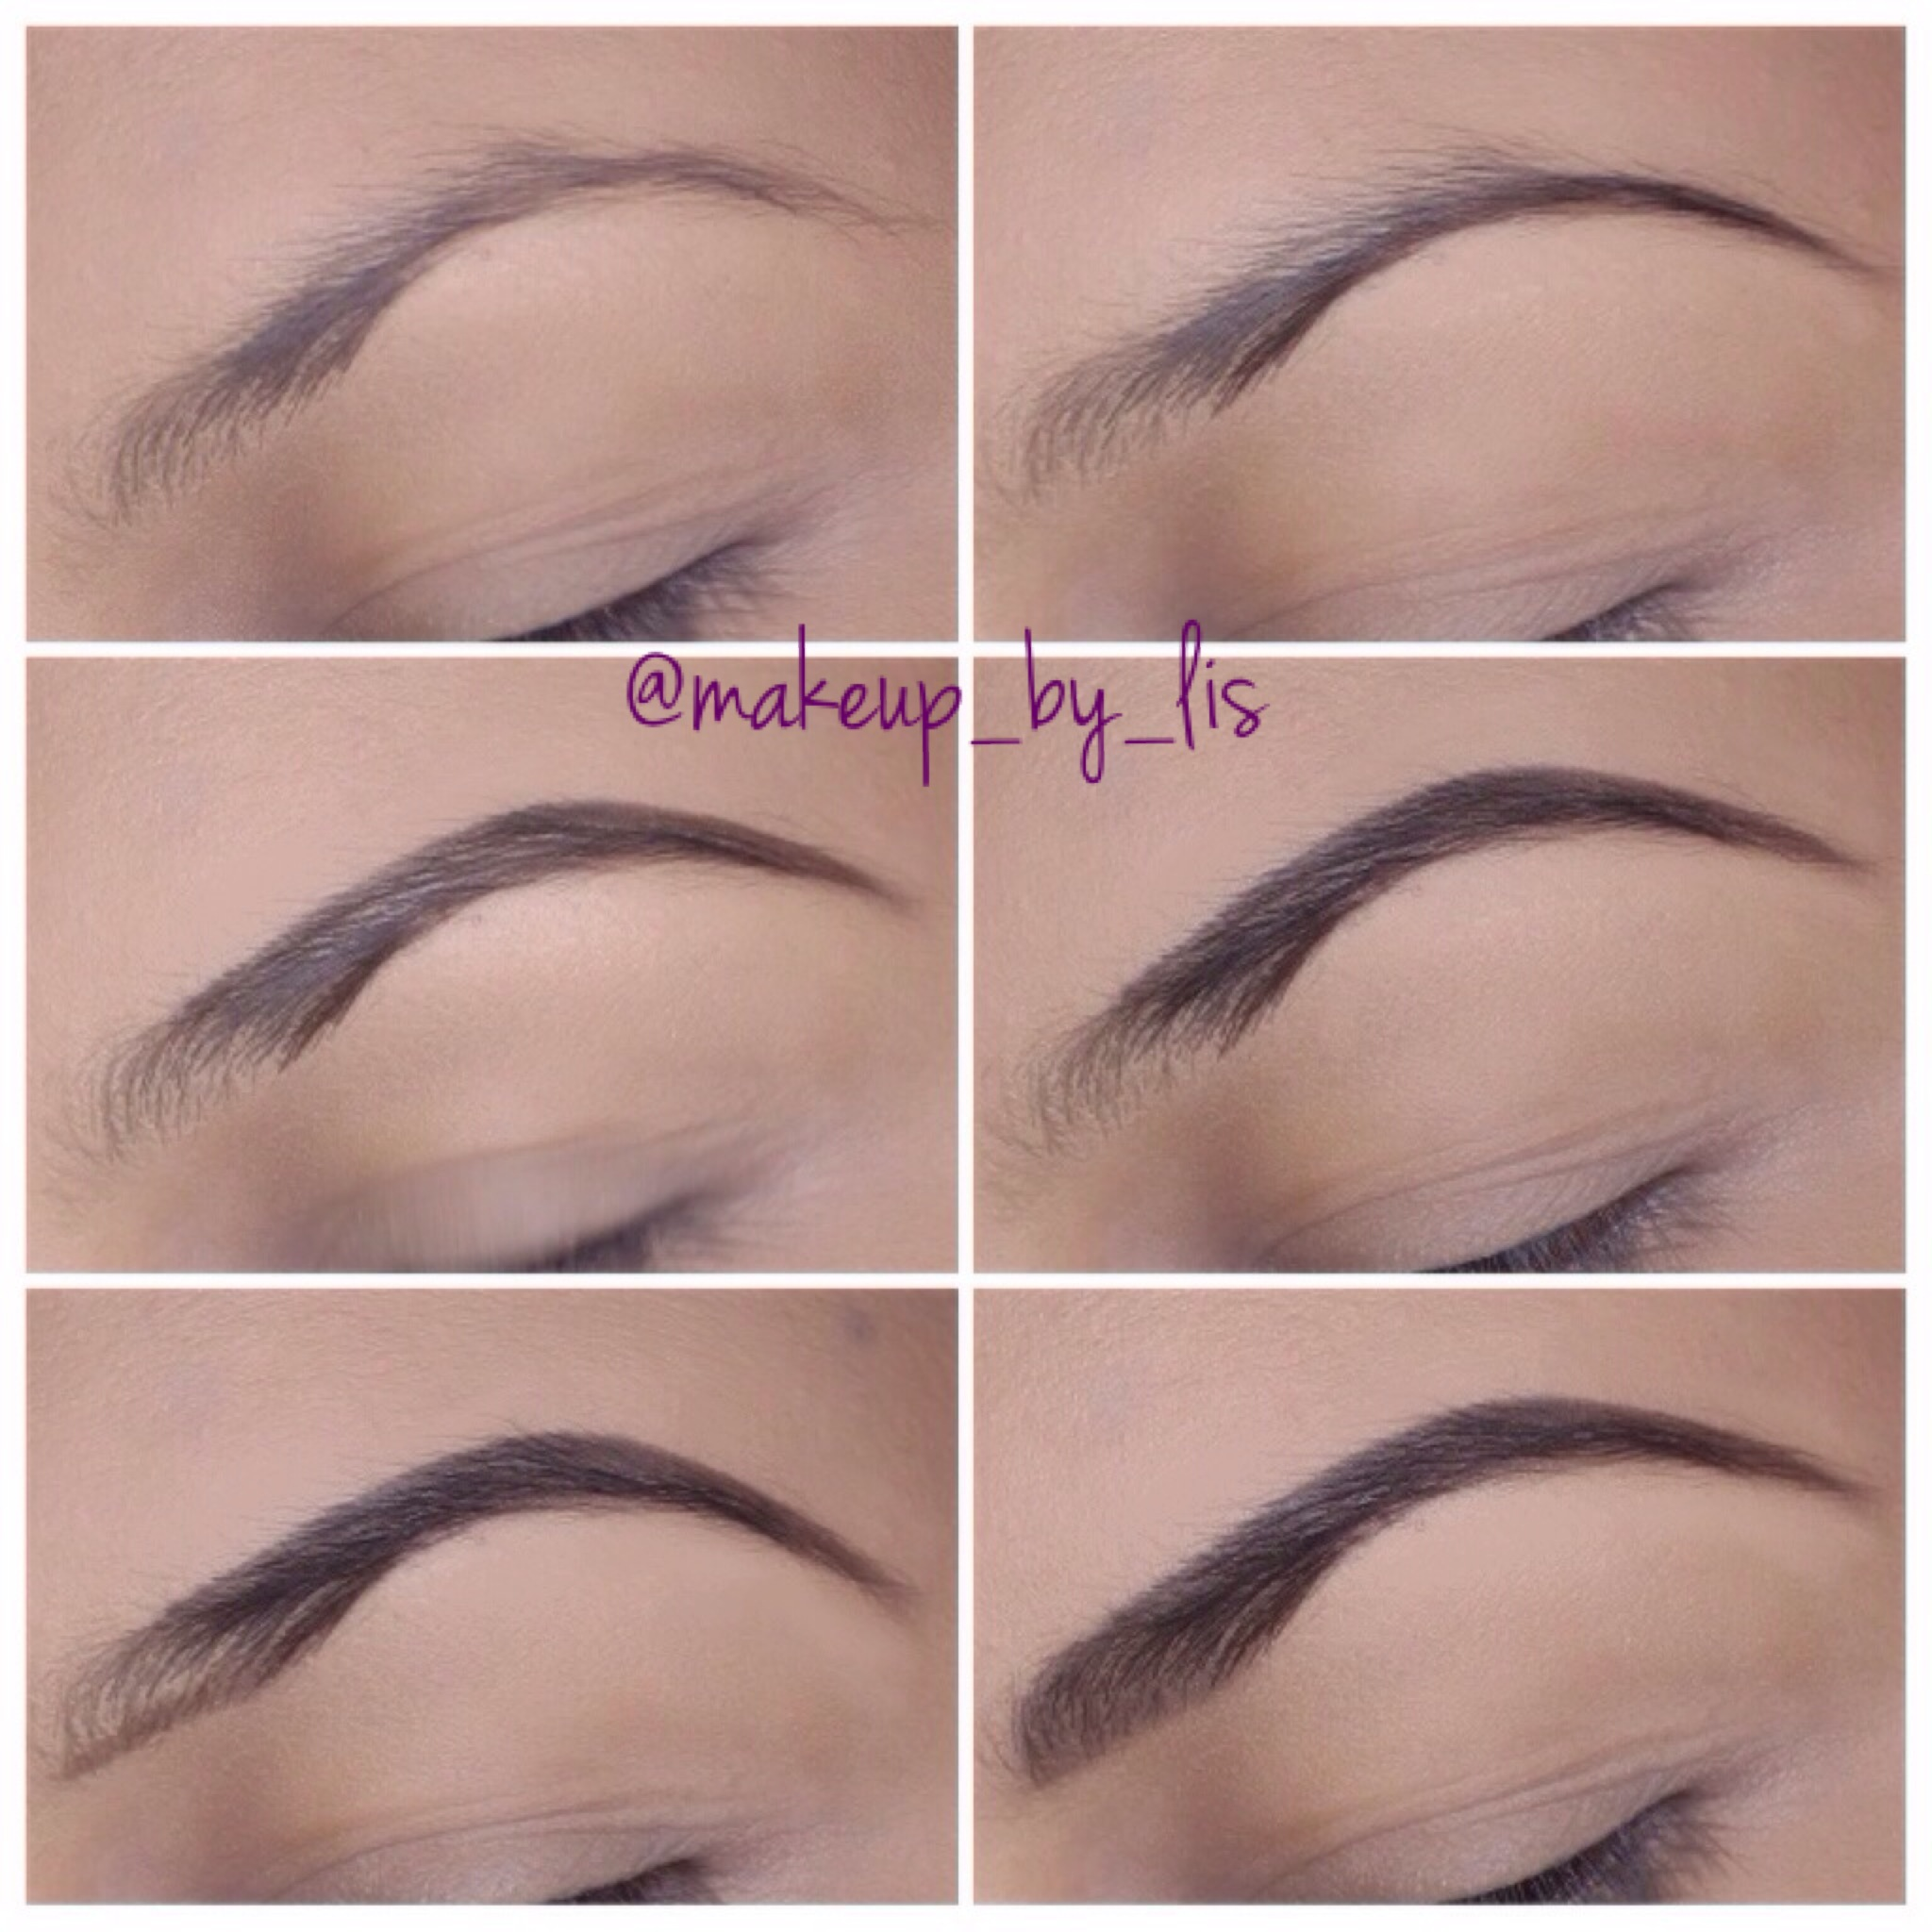 Easy Step By Step Eyebrow Tutorial Makeup By Lis Puerto Rico